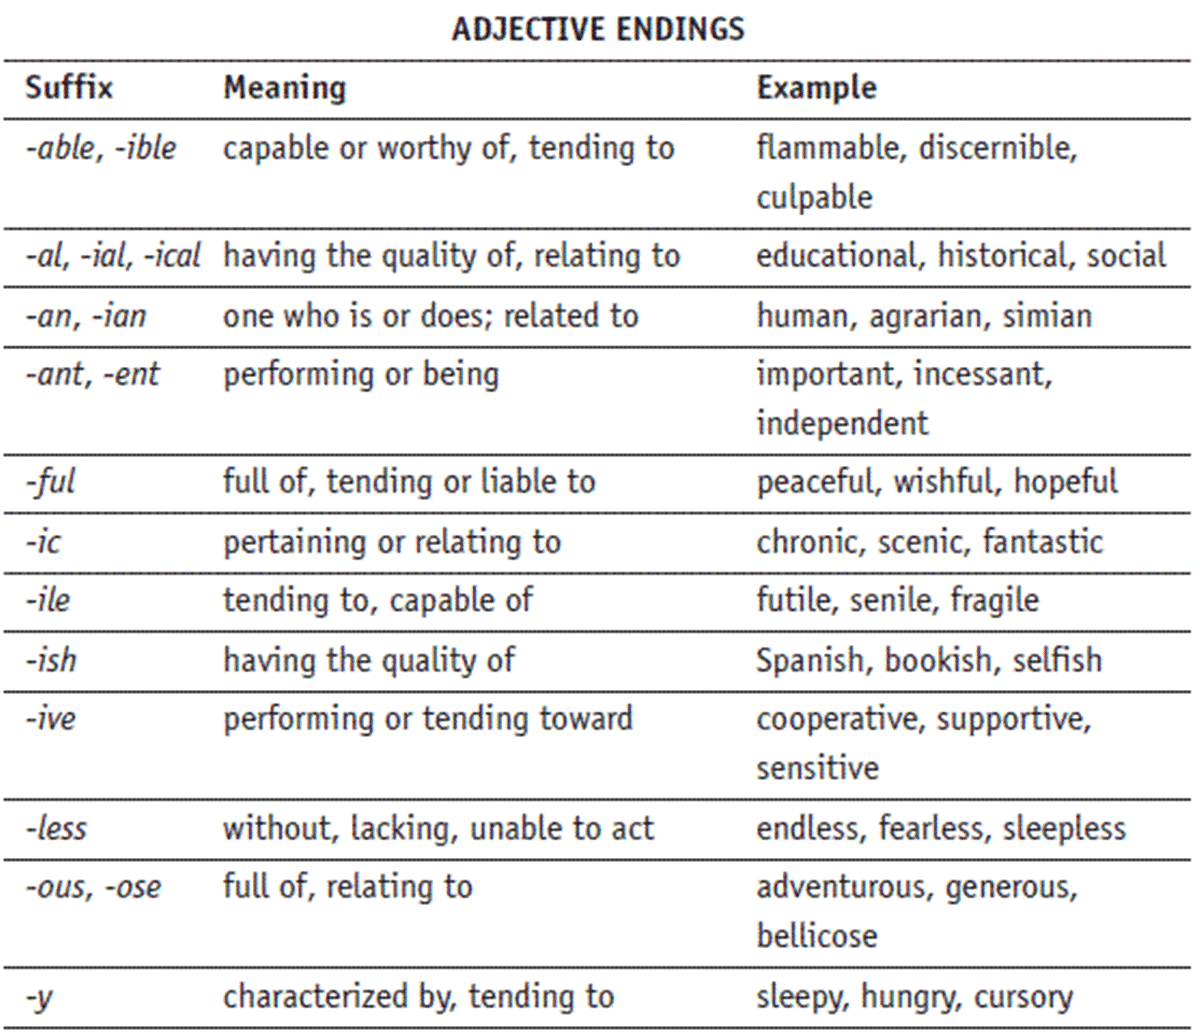 Adjective Suffixes in English